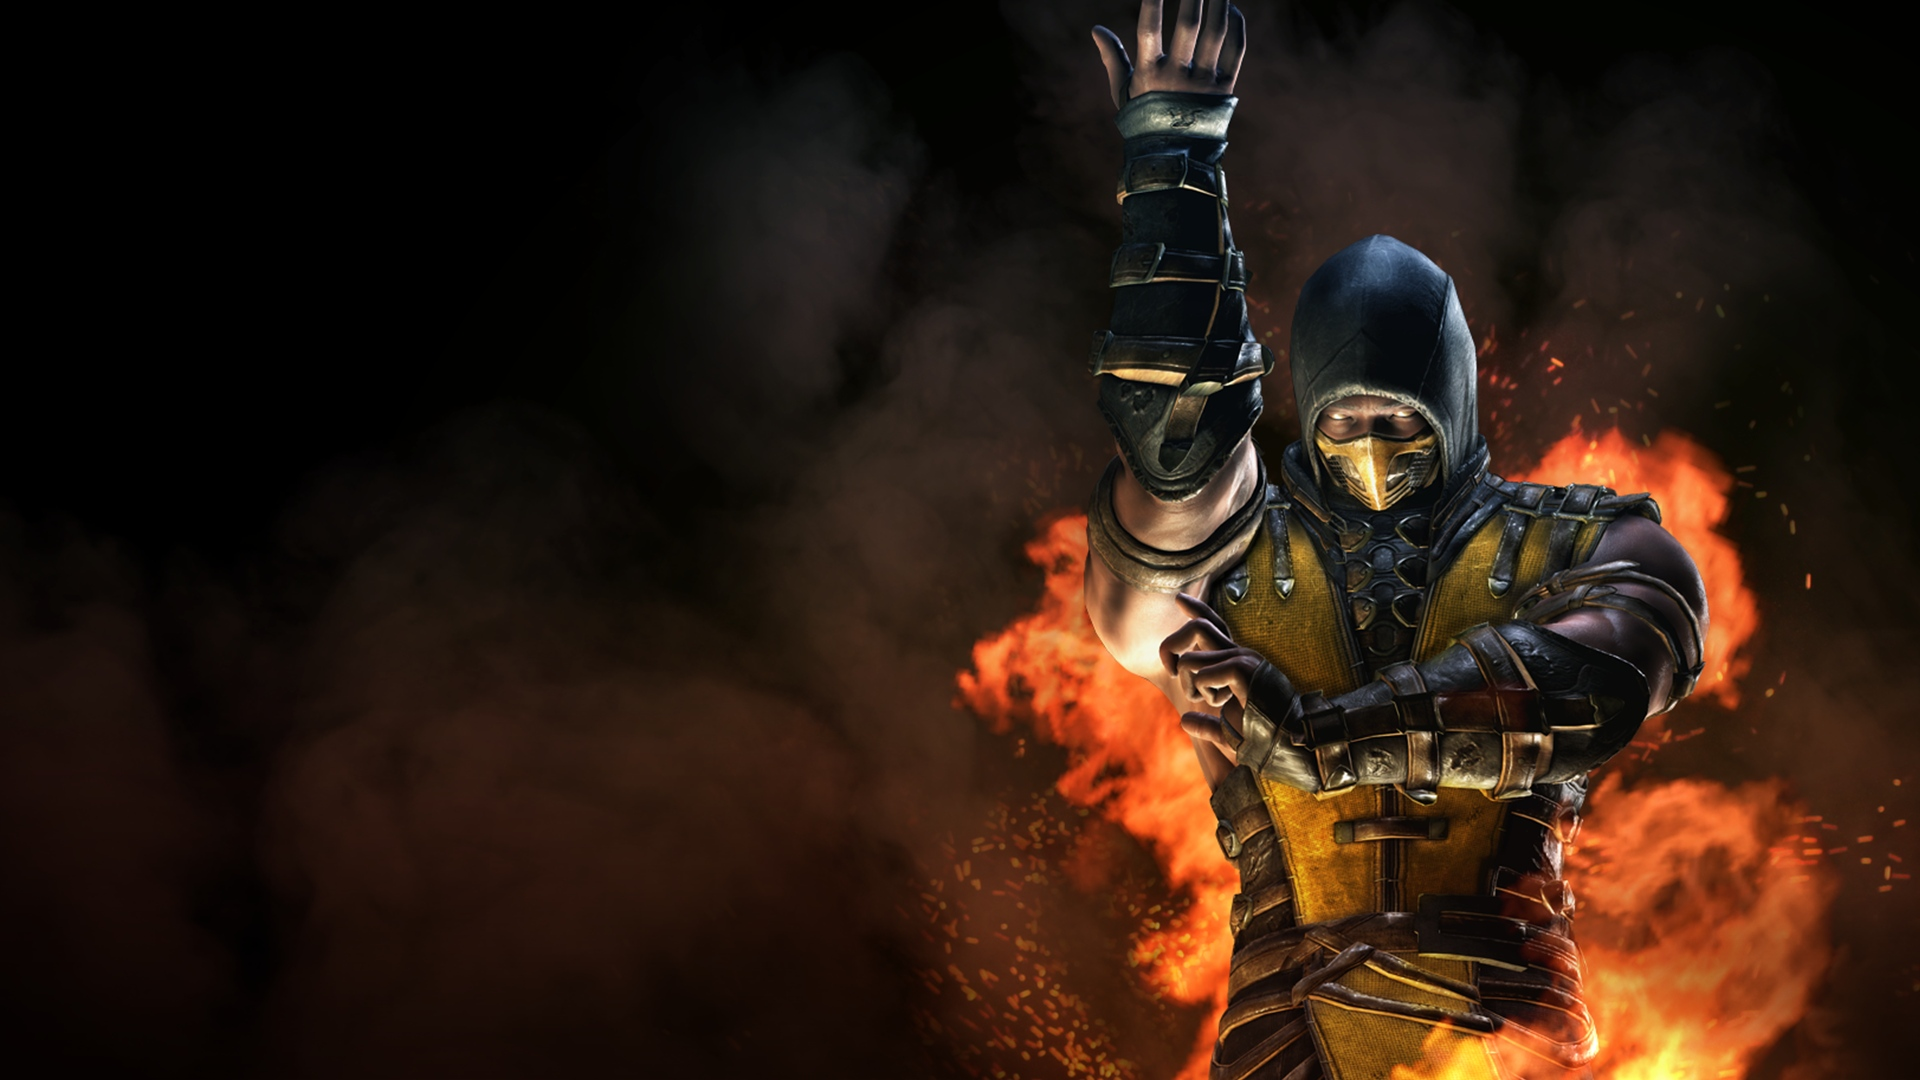 scorpion flame mortal kombat x wallpaper 1920x1080 1920x1080